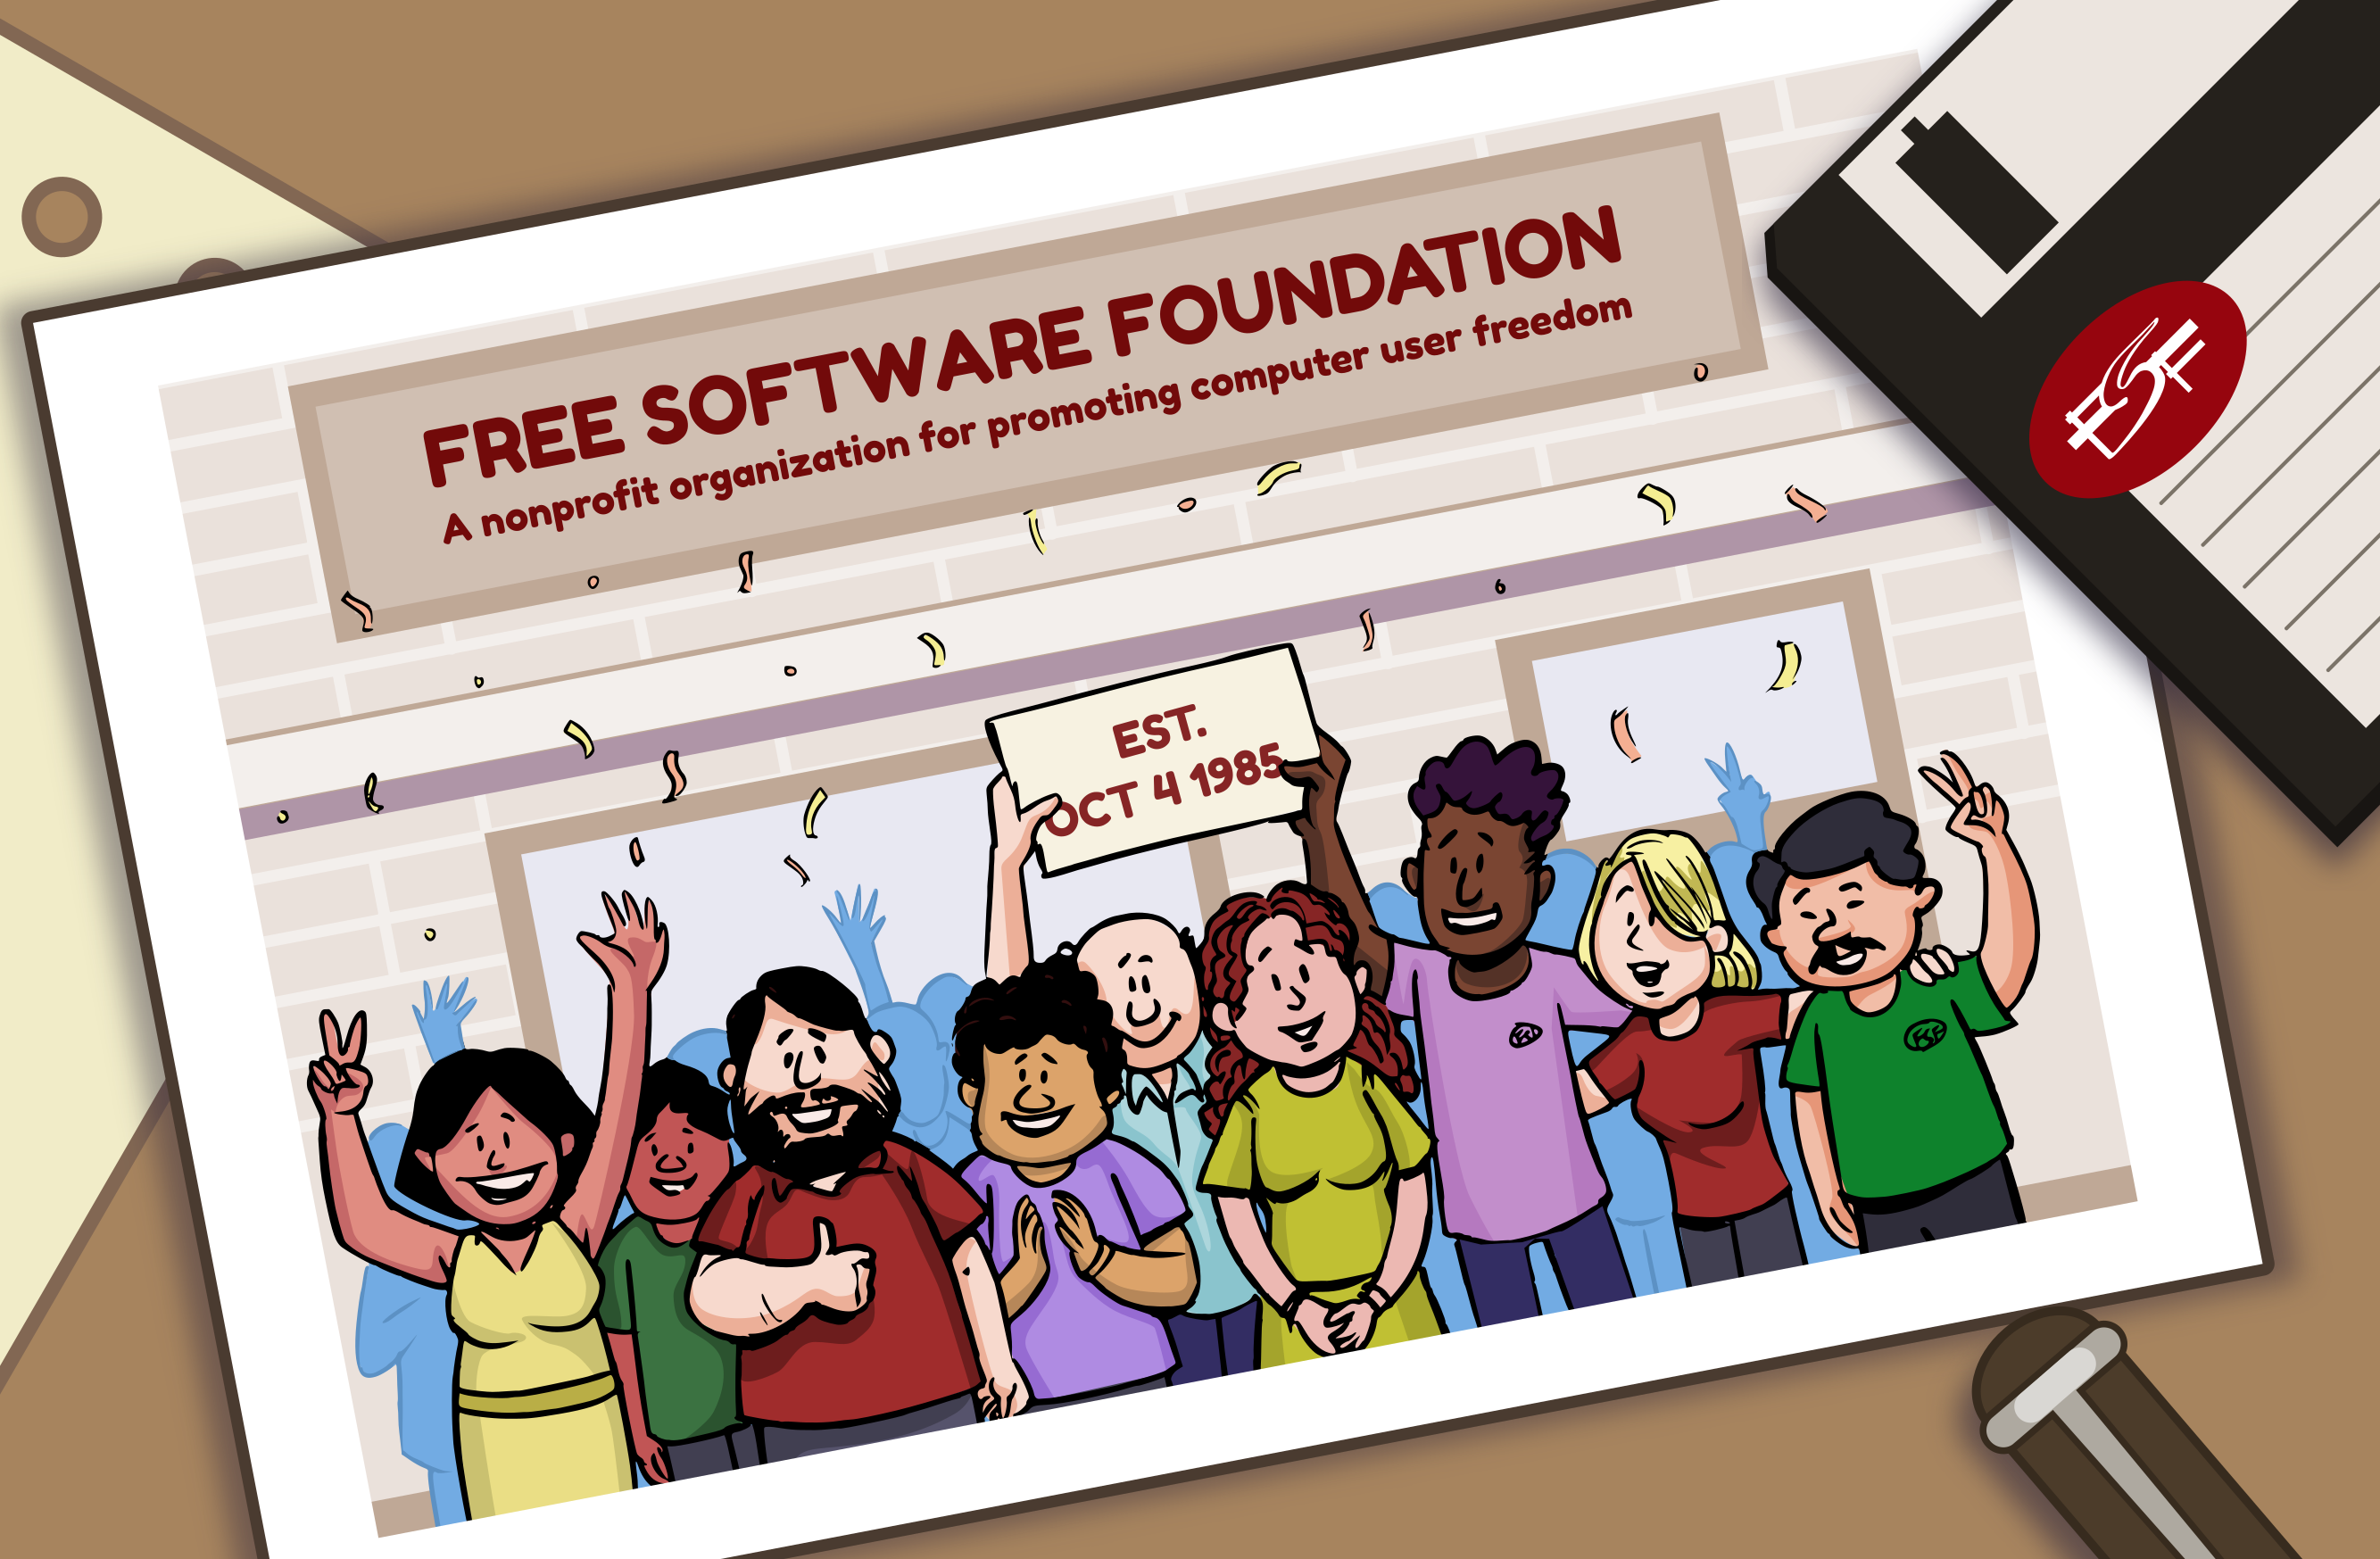 All aboard for software freedom! Help us reach our goal of 500 new members before Jan. 18